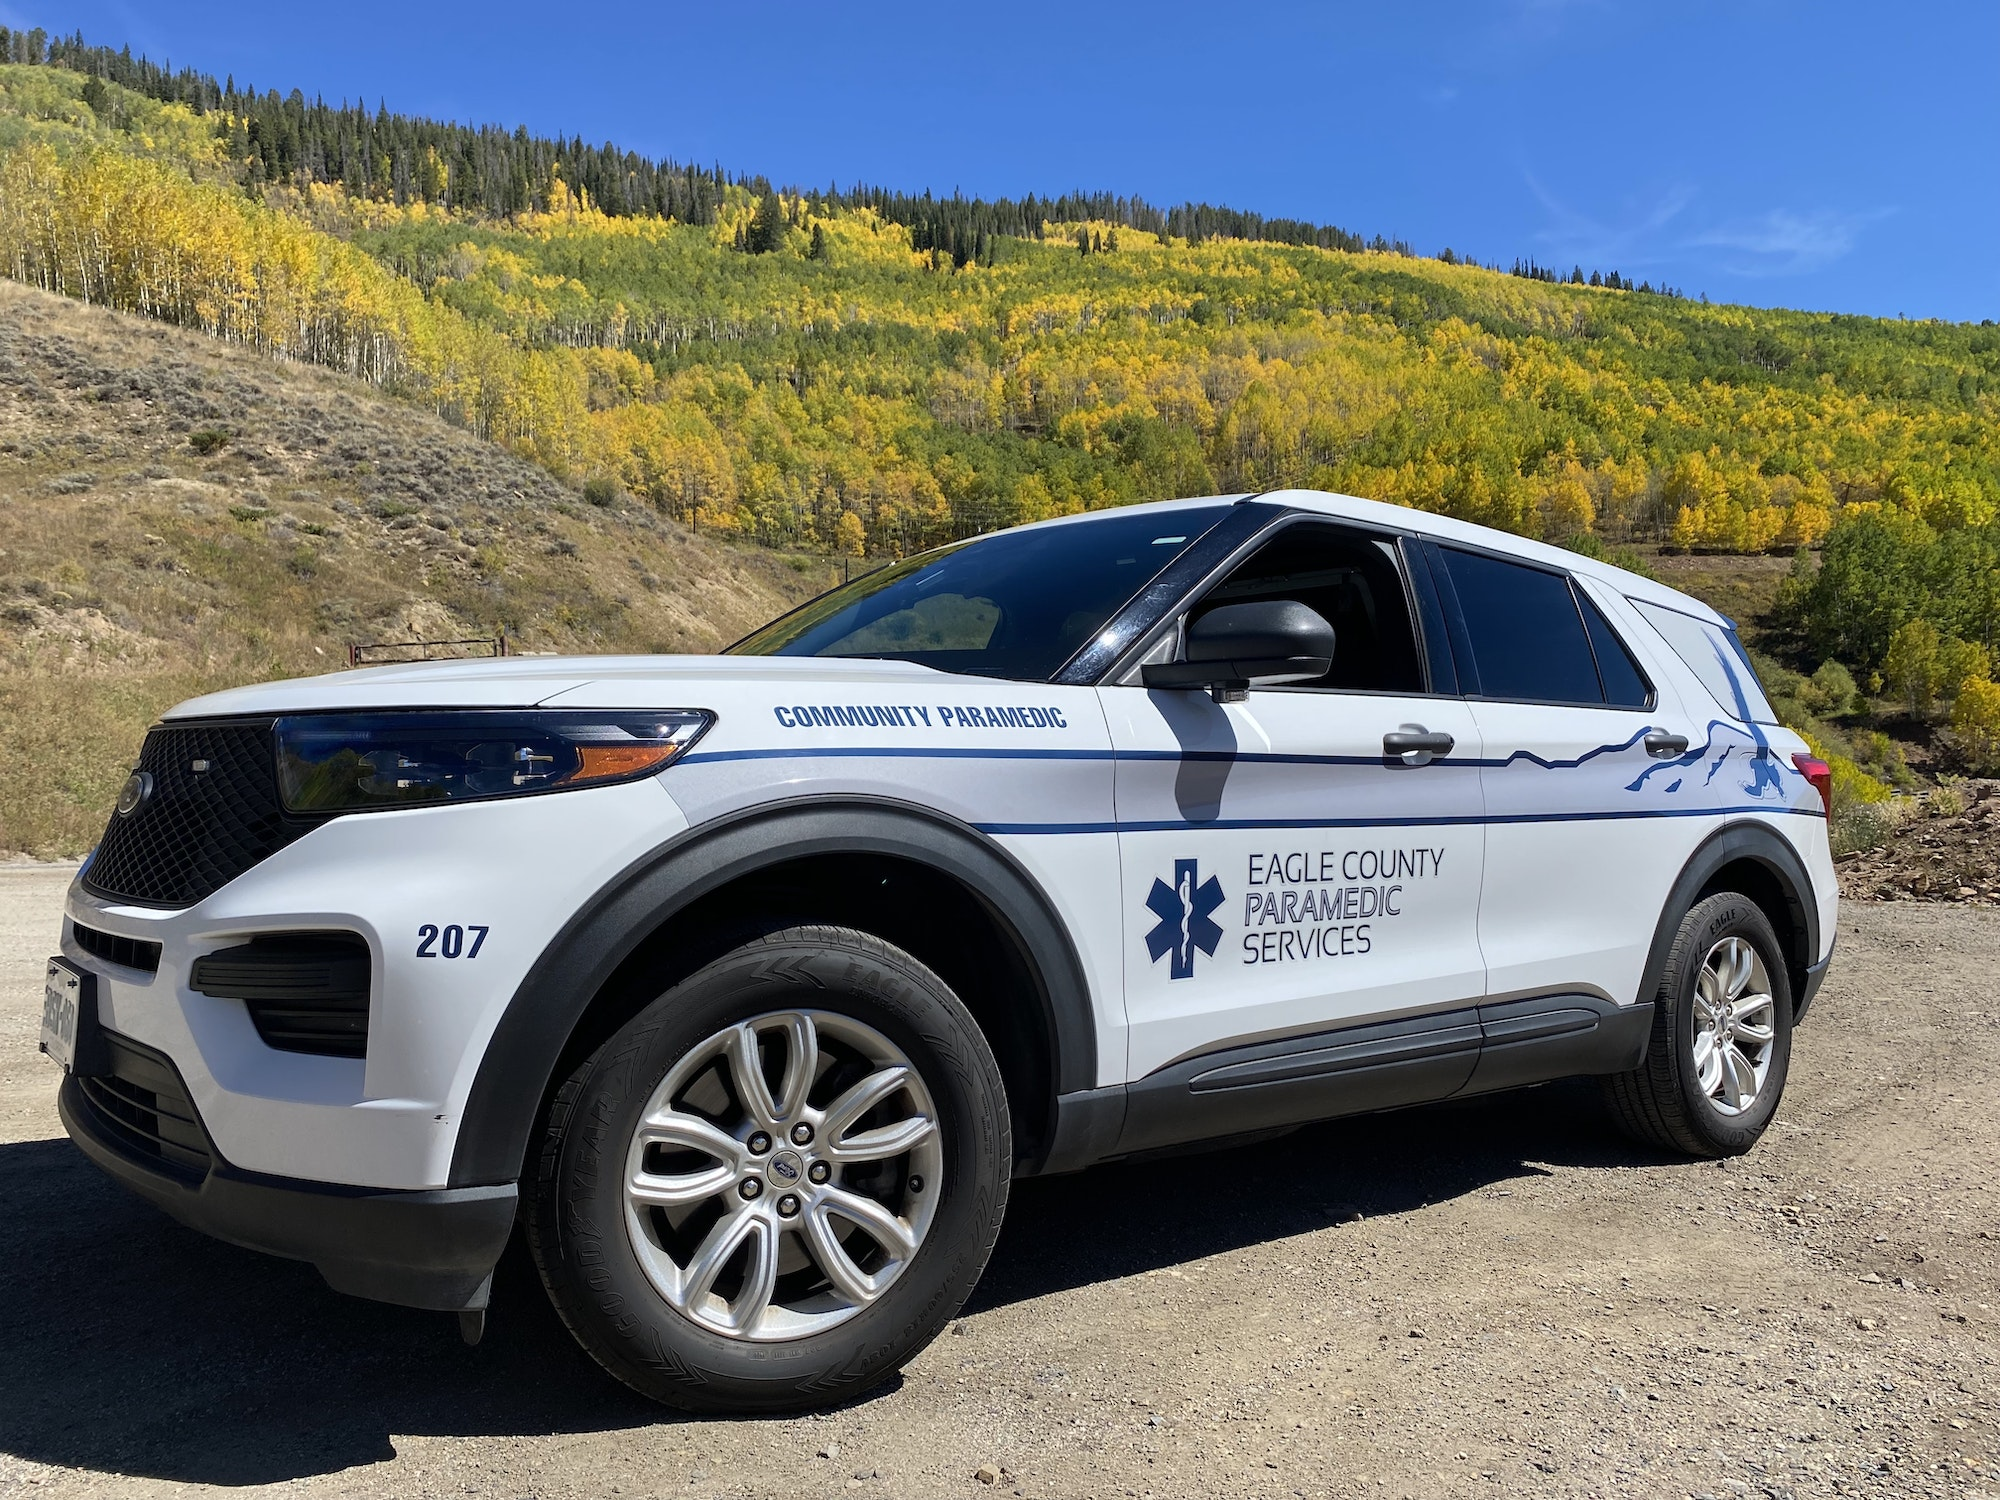 Community Paramedic SUV parked with changing yellow aspen leaves in the background.